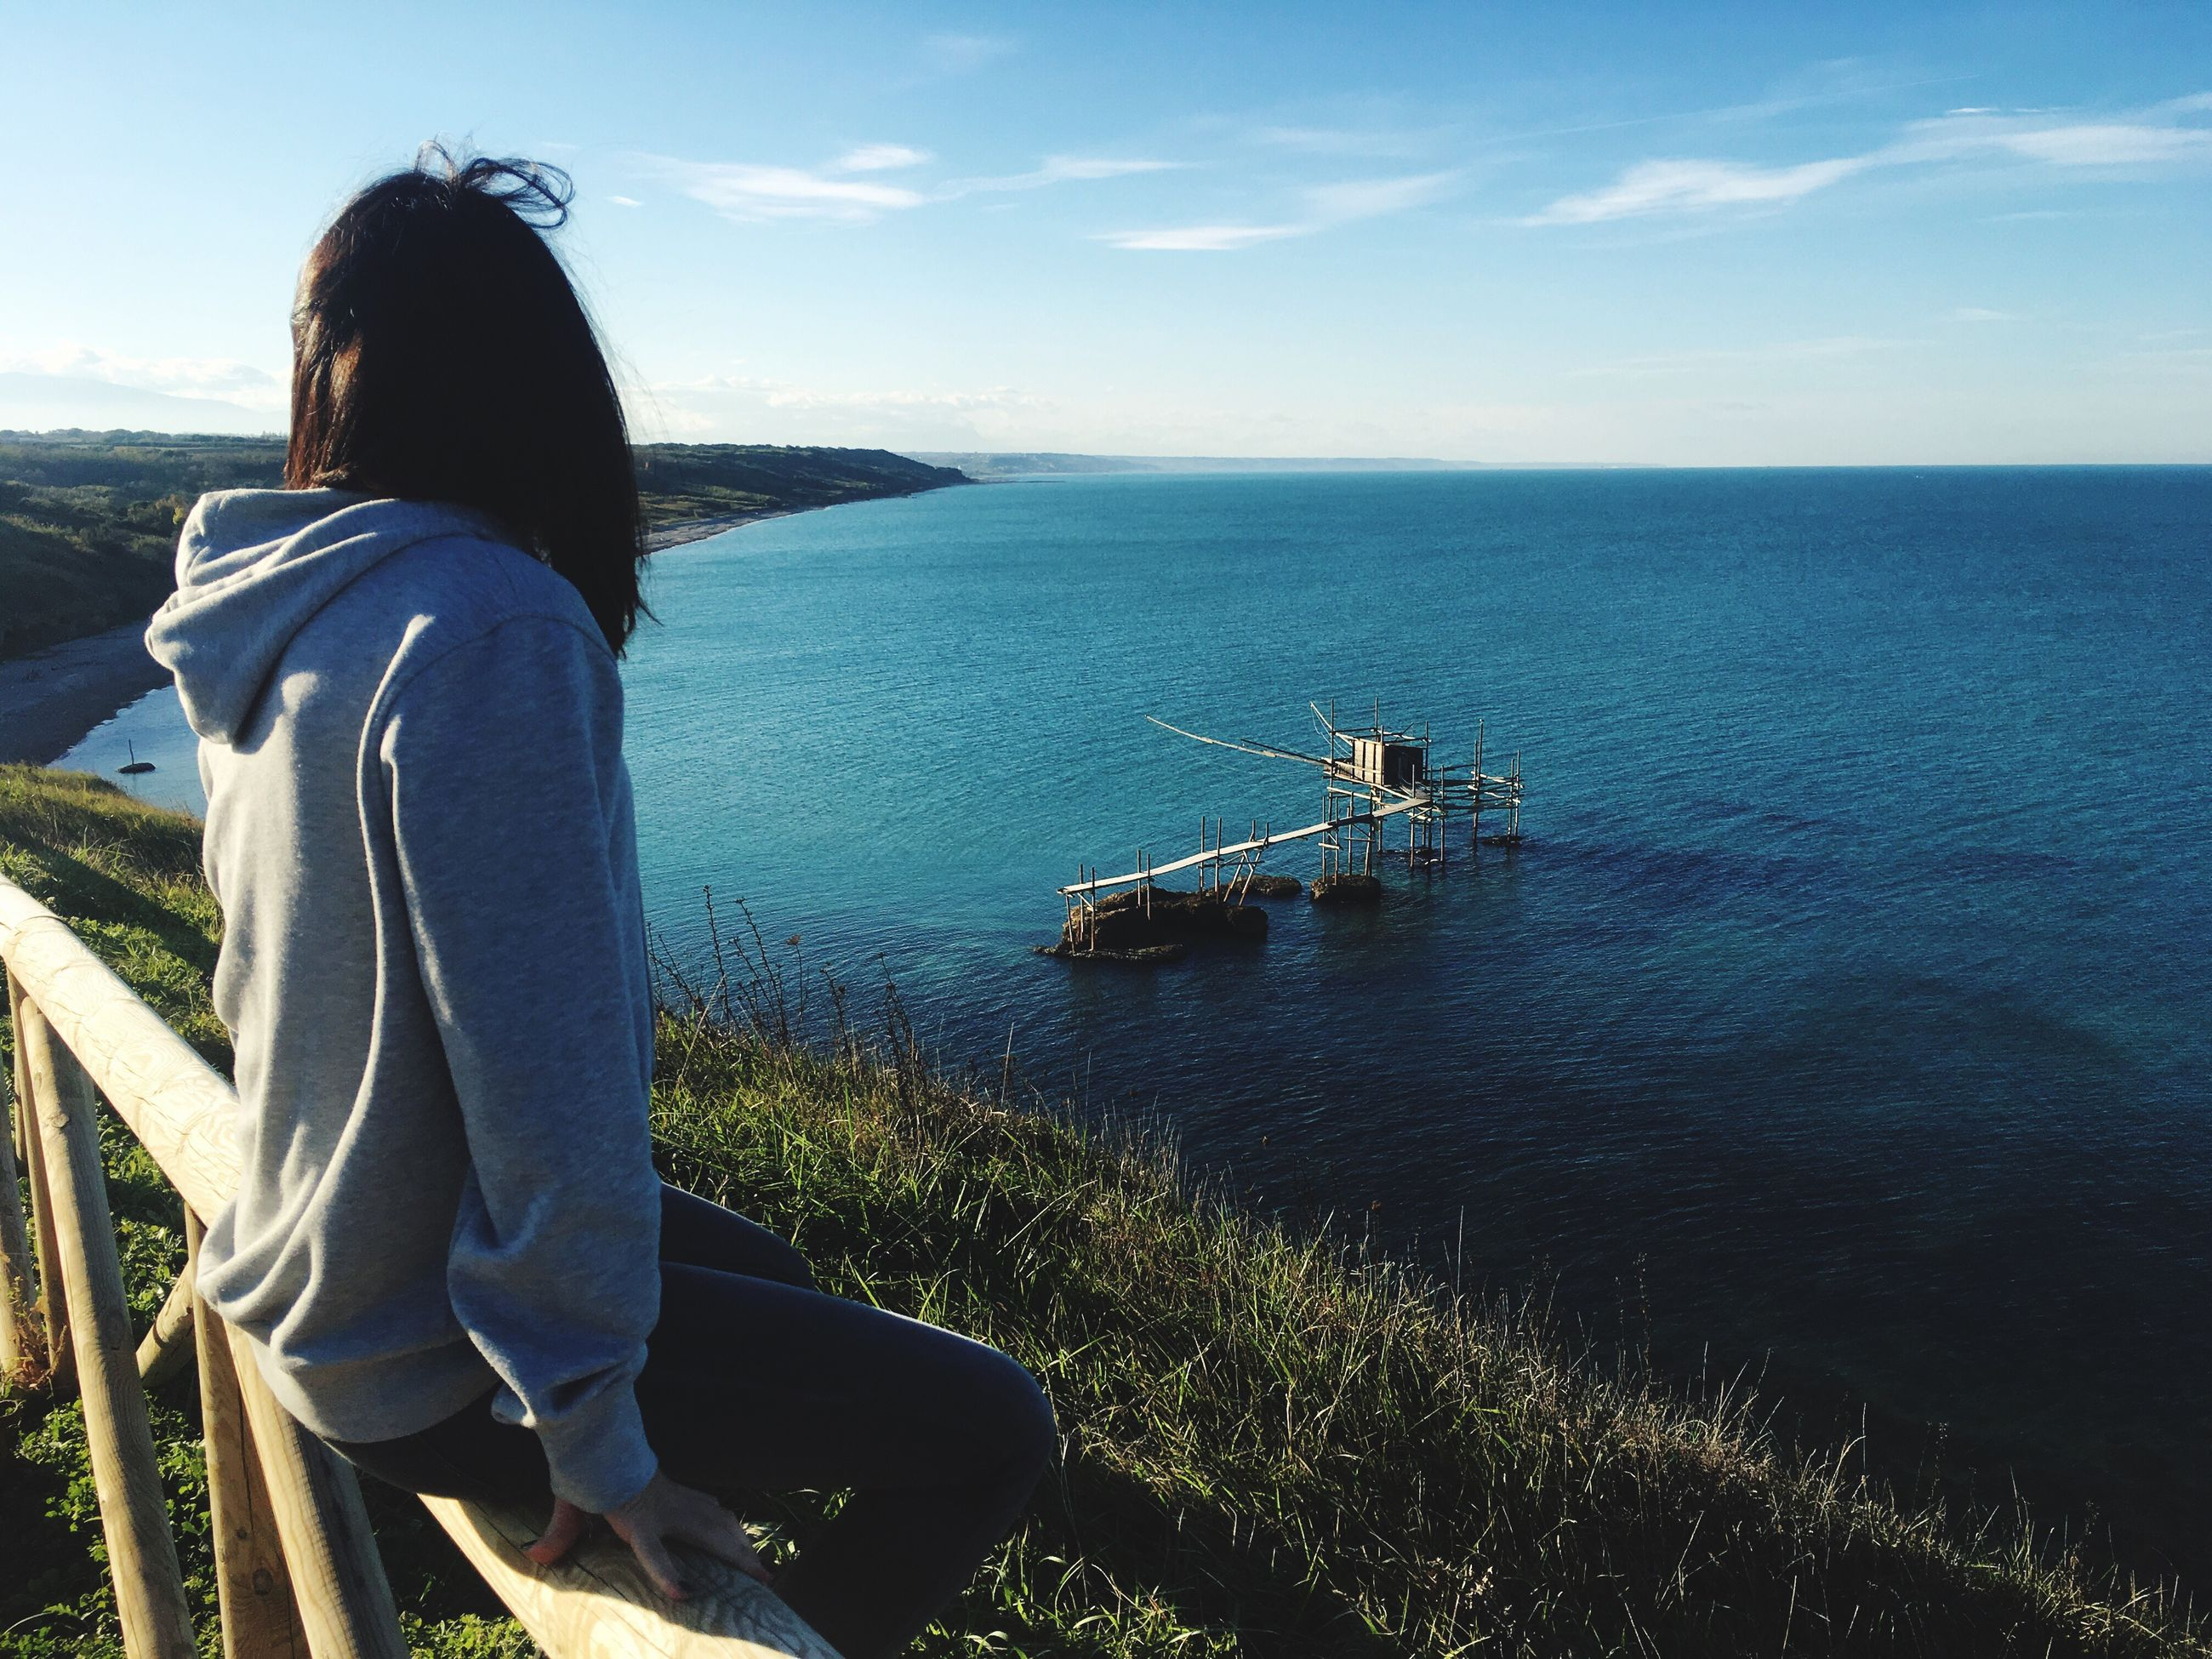 sea, real people, water, one person, sky, lifestyles, leisure activity, horizon over water, outdoors, nautical vessel, women, rear view, standing, day, nature, scenics, young women, beauty in nature, young adult, adults only, adult, people